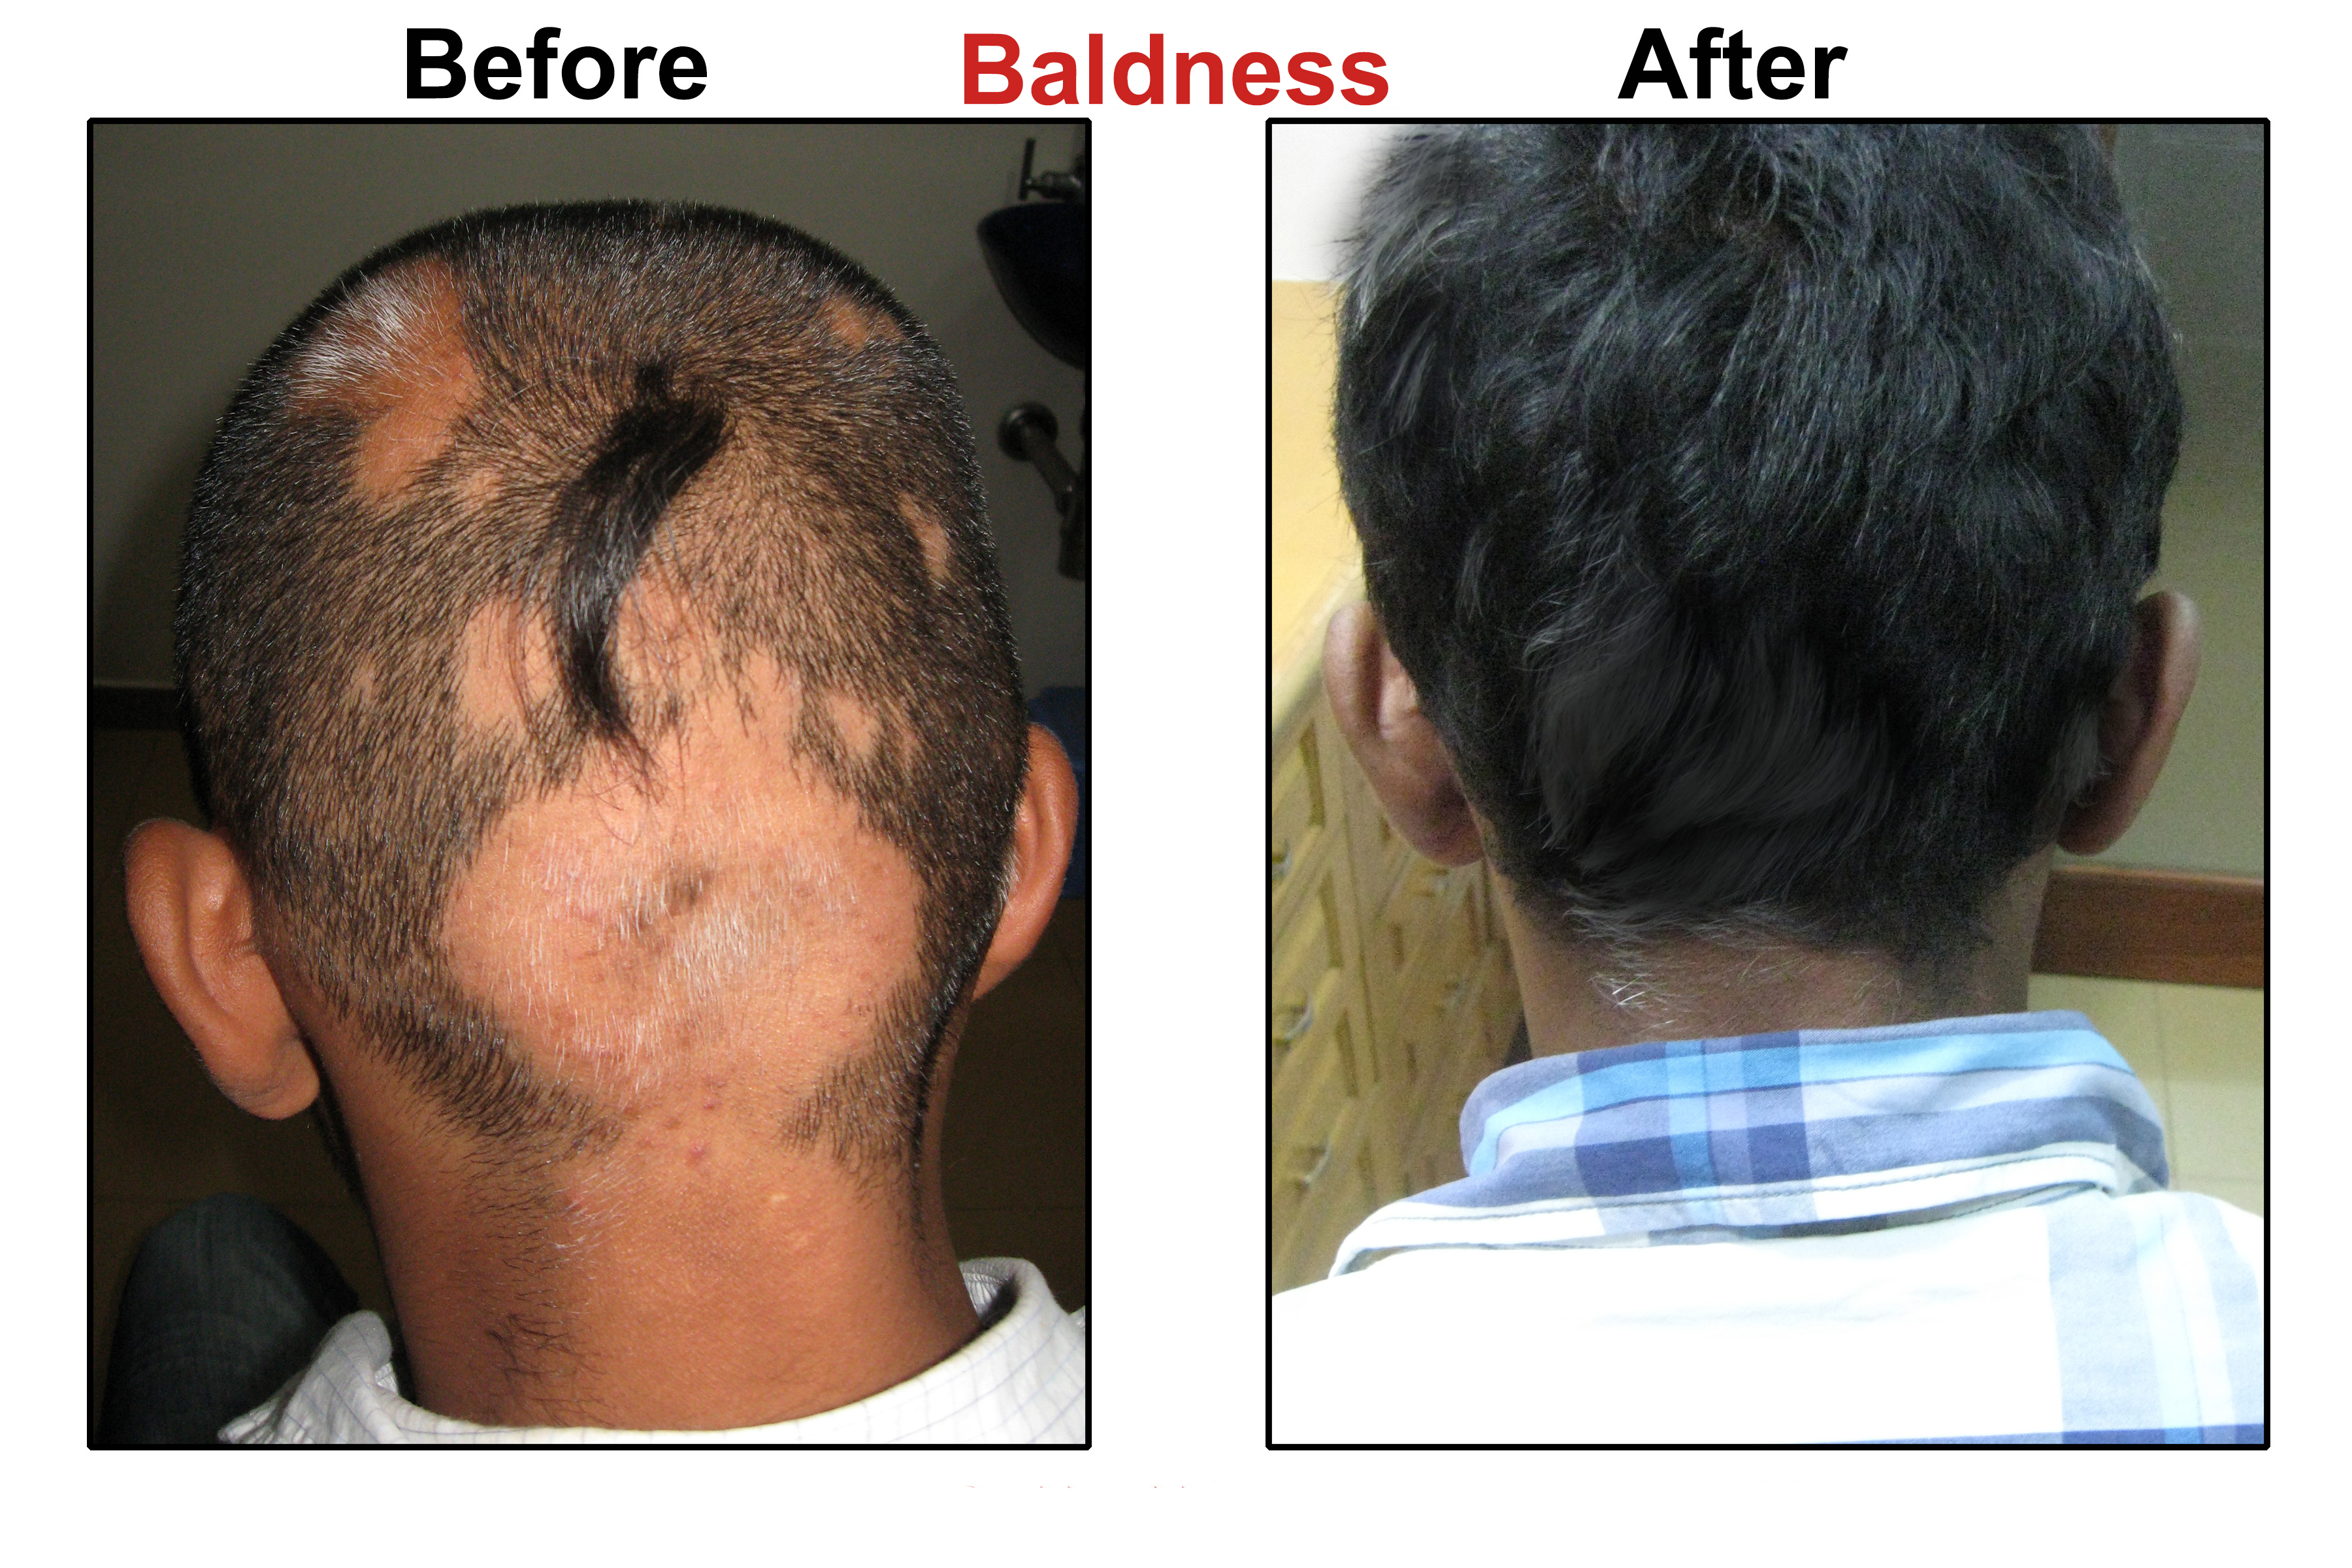 a discussion of baldness and methods to cover the bald area Fue hair transplant follicular unit extraction (fue) is the modern method of hair transplant in which the grafts are collected from the donor area individually (one by one.